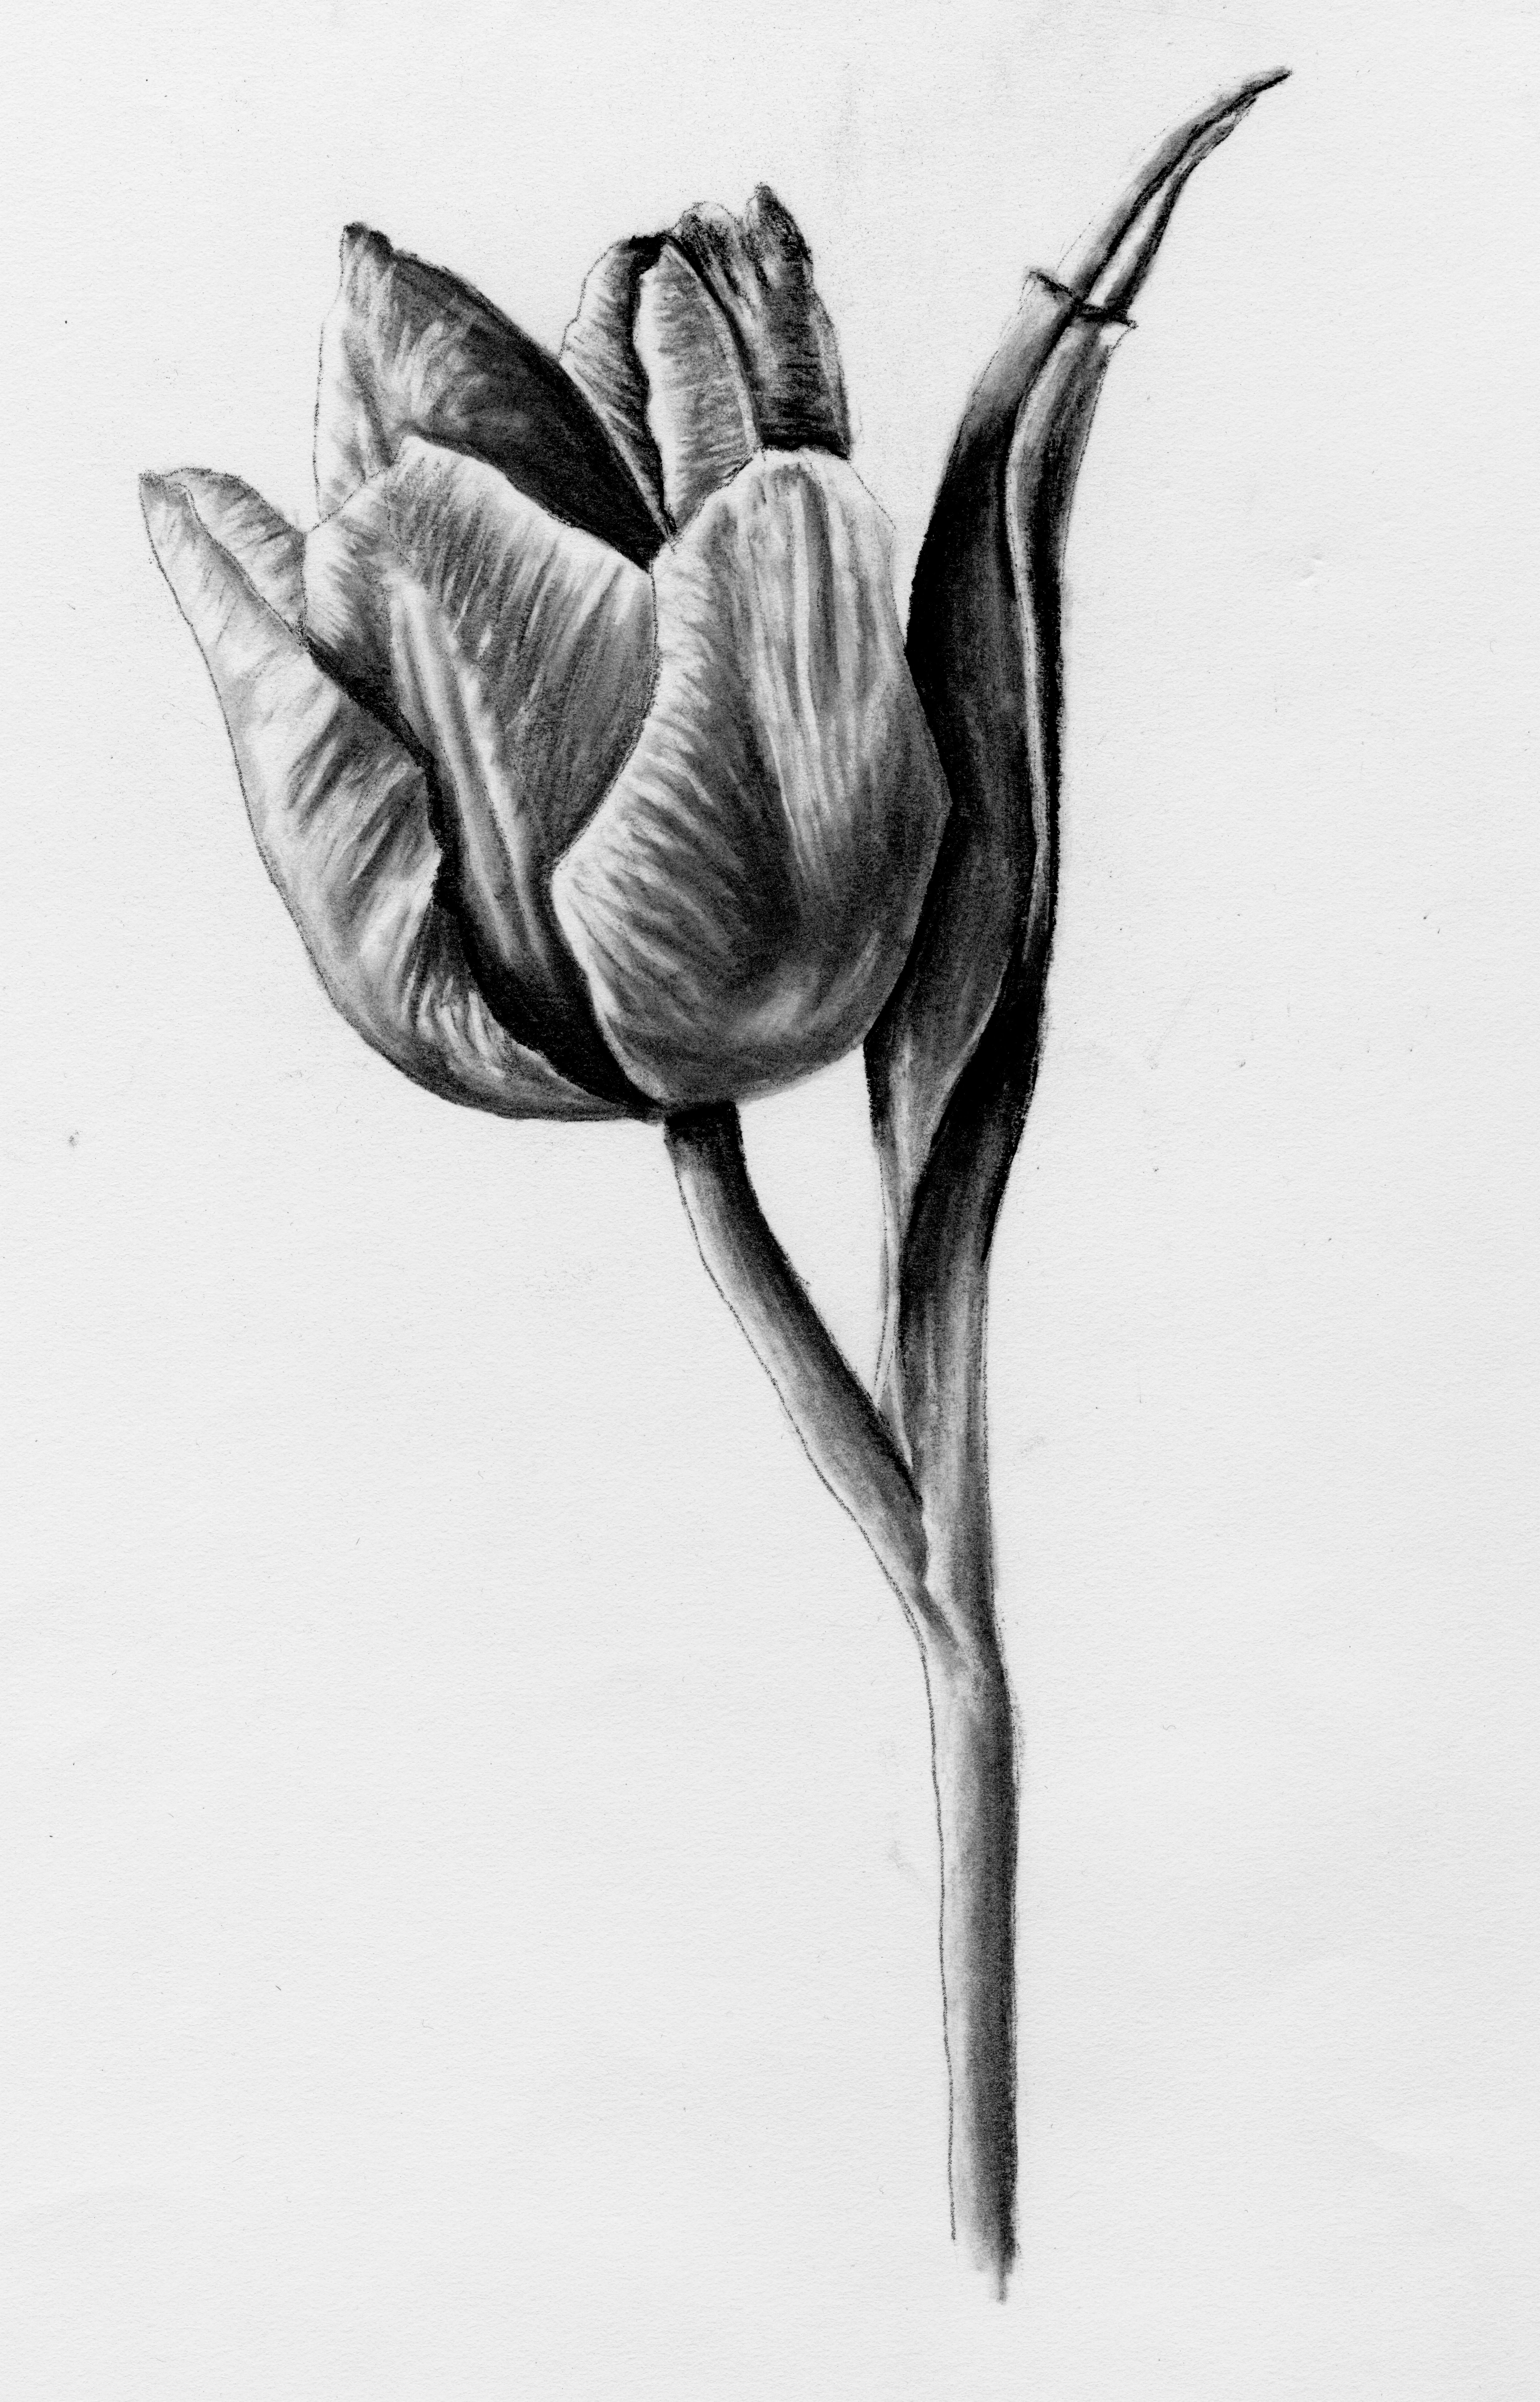 Charcoal rendering of a single tulip.